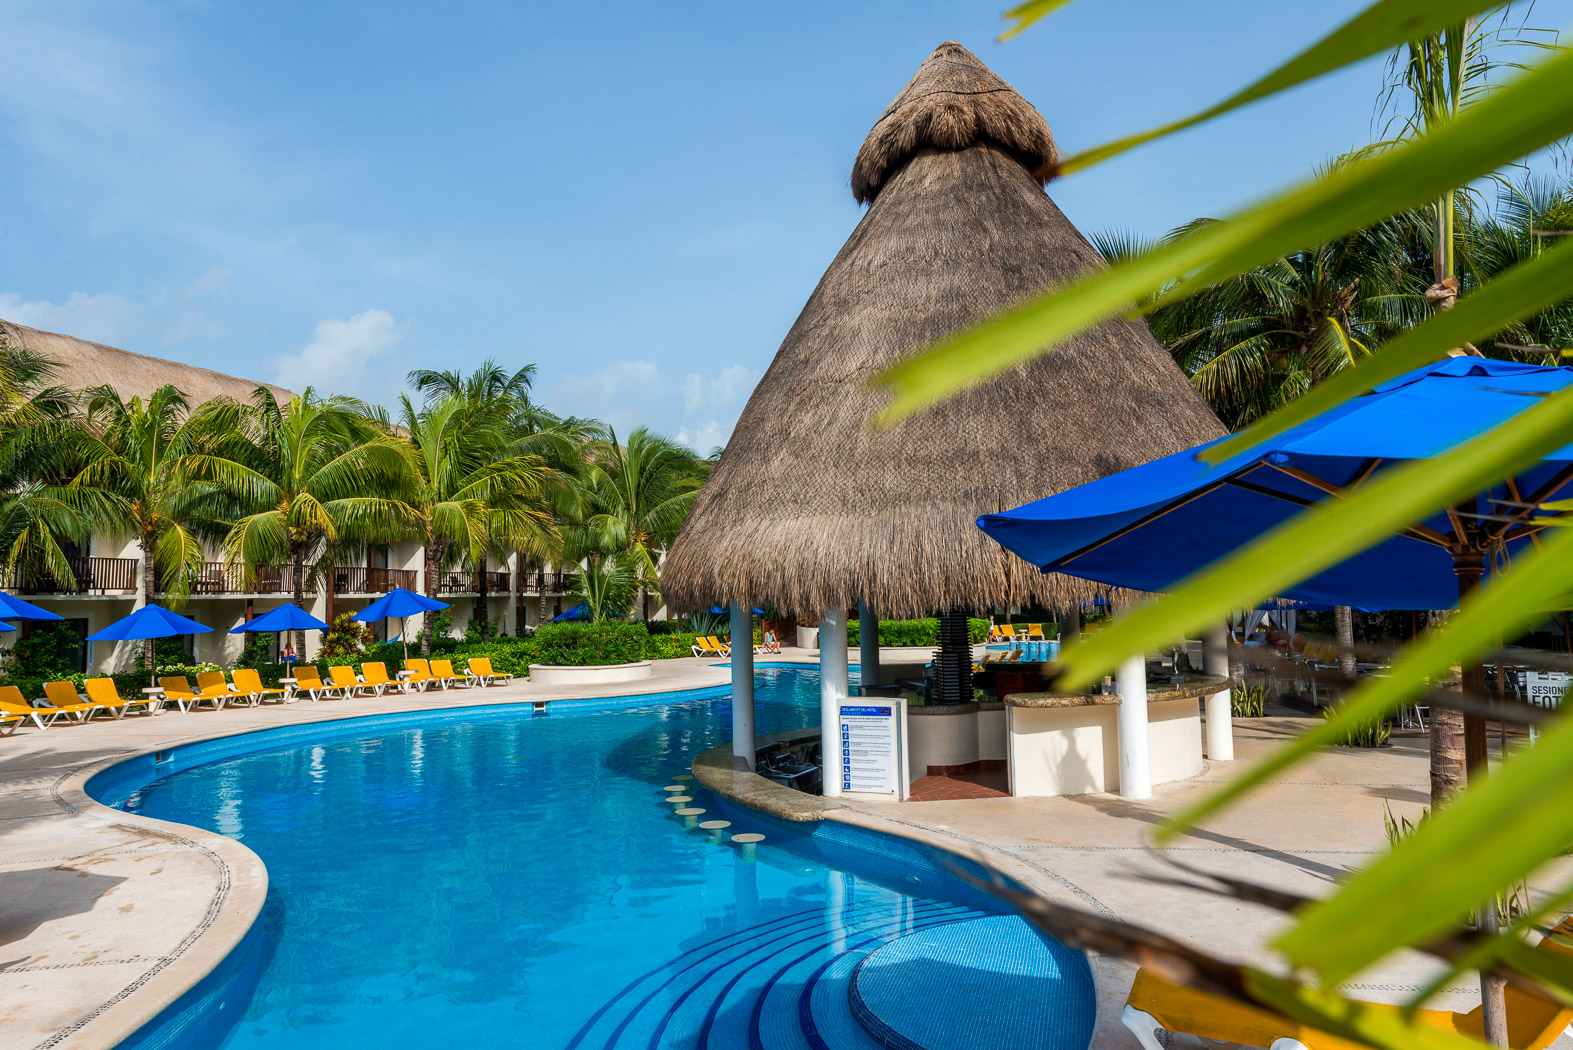 Hotel The Reef Coco Beach Mexique